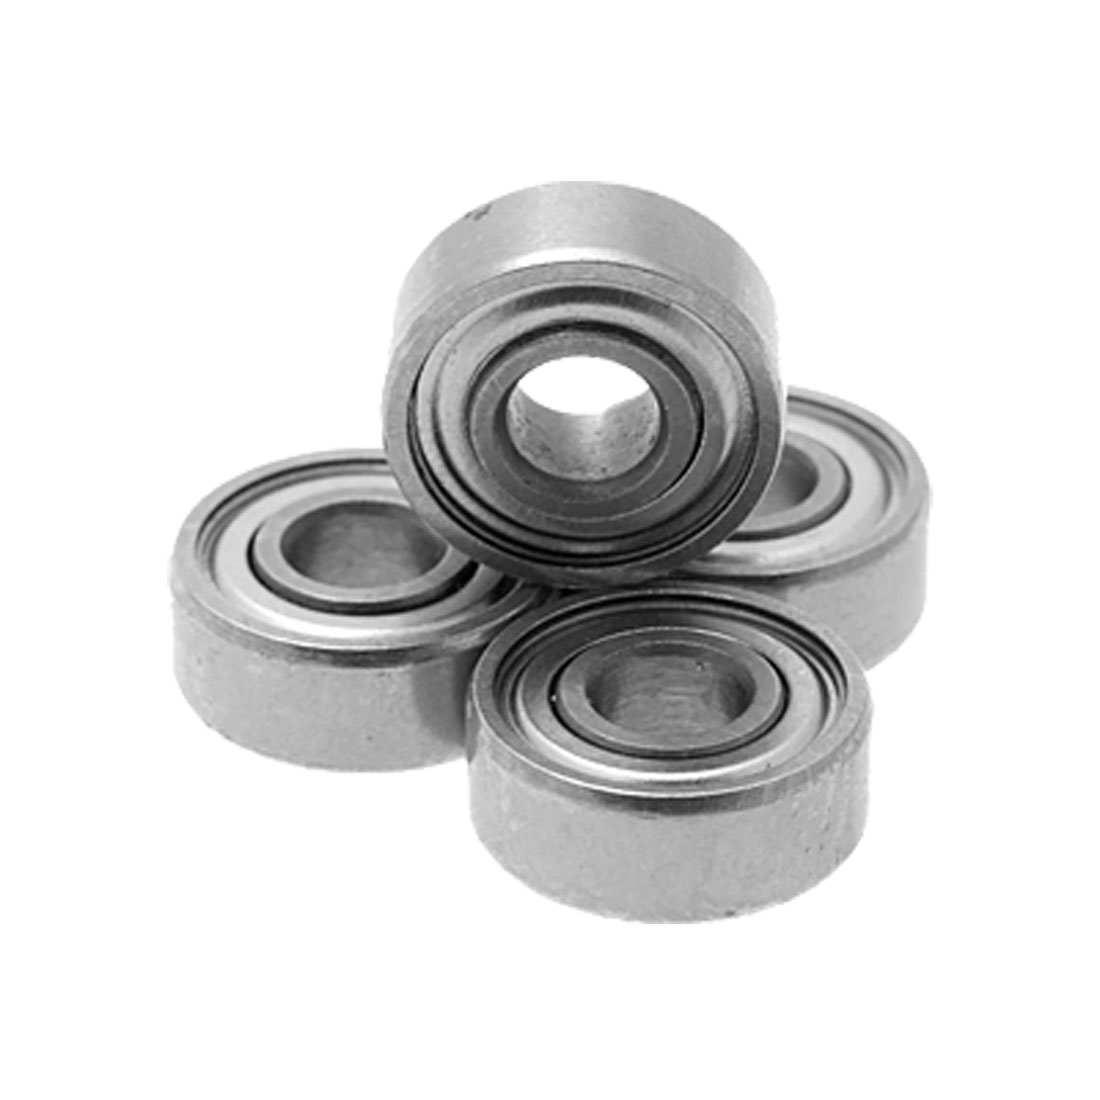 BR0306025 Bearing RC Helicopter Parts for Pigeon 450M1 and T-Rex 450 (Inner Diameter 3mm)